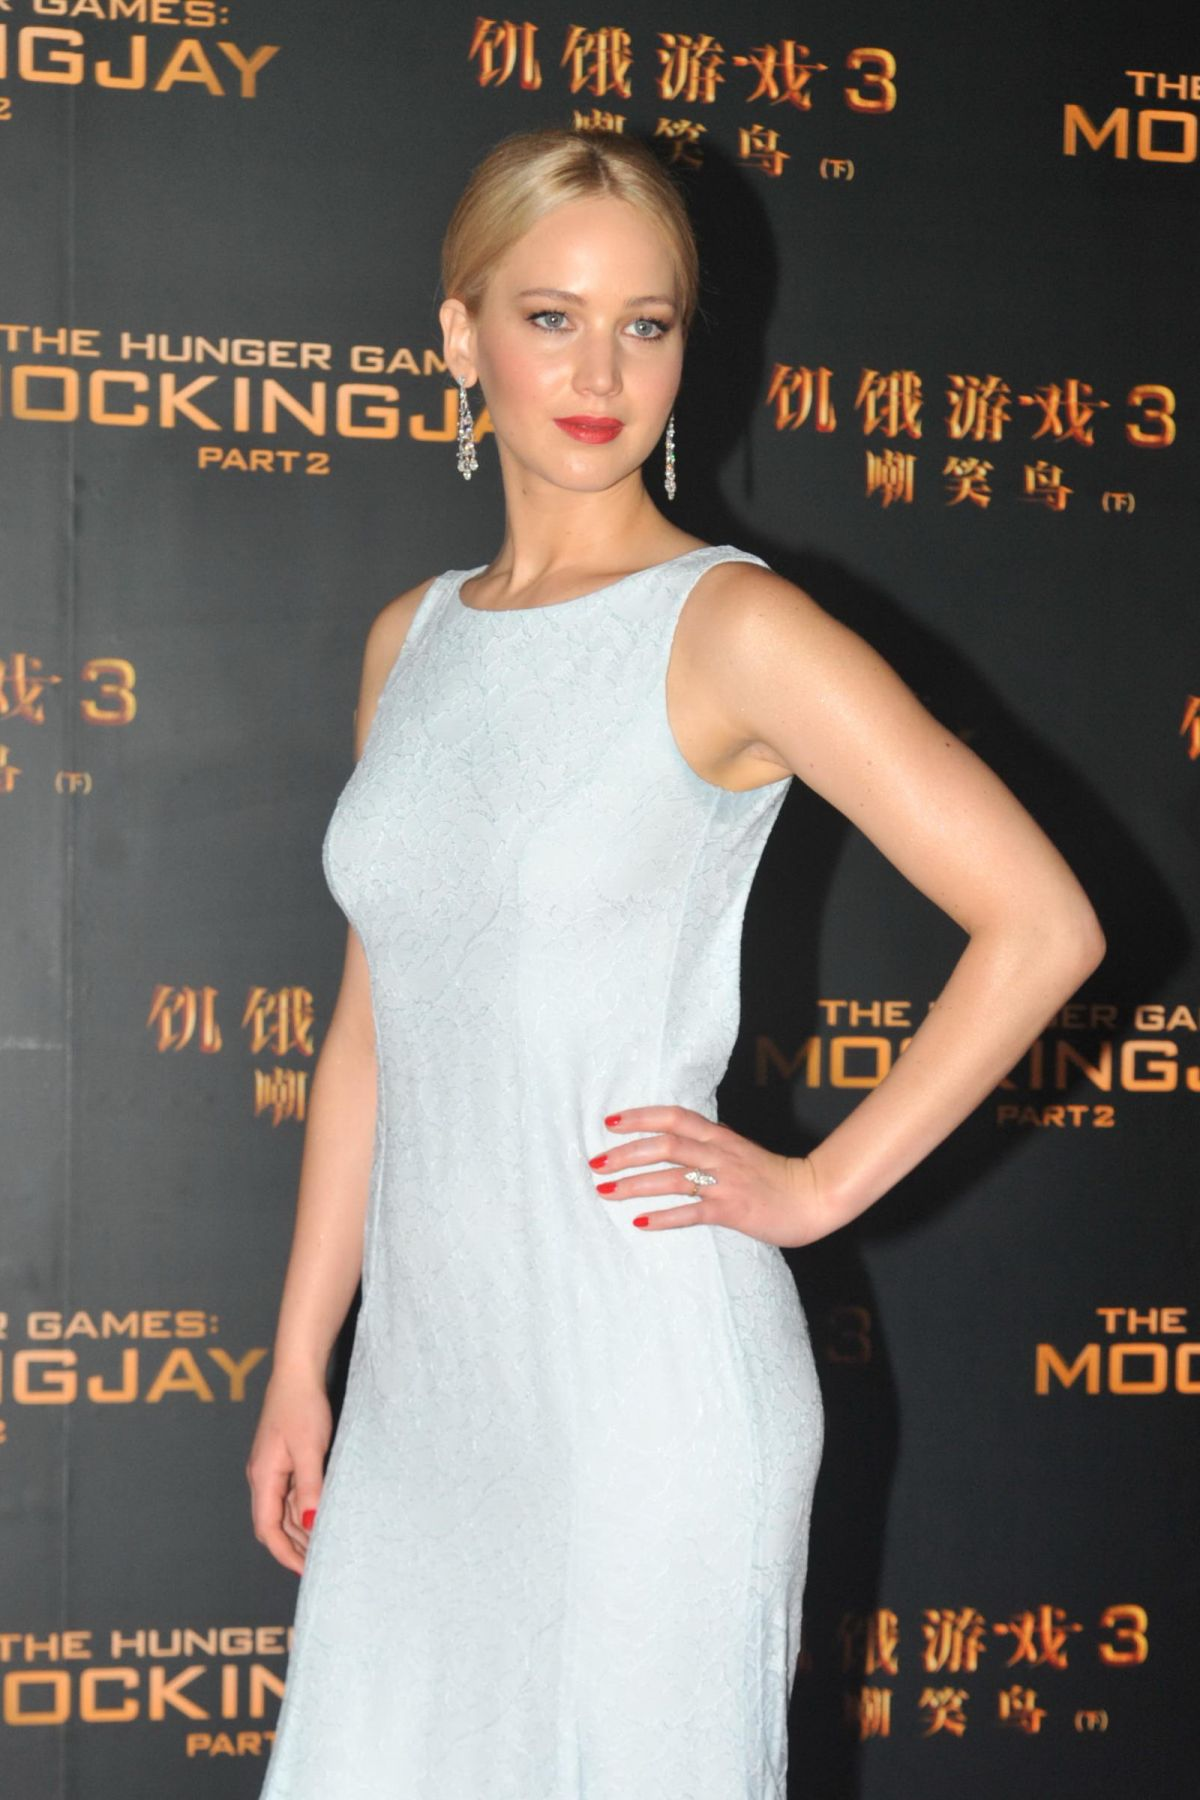 JENNIFER LAWRENCE at The Hunger Games: Mockingjay, Part 2 Premiere in Beijing 11/12/2015